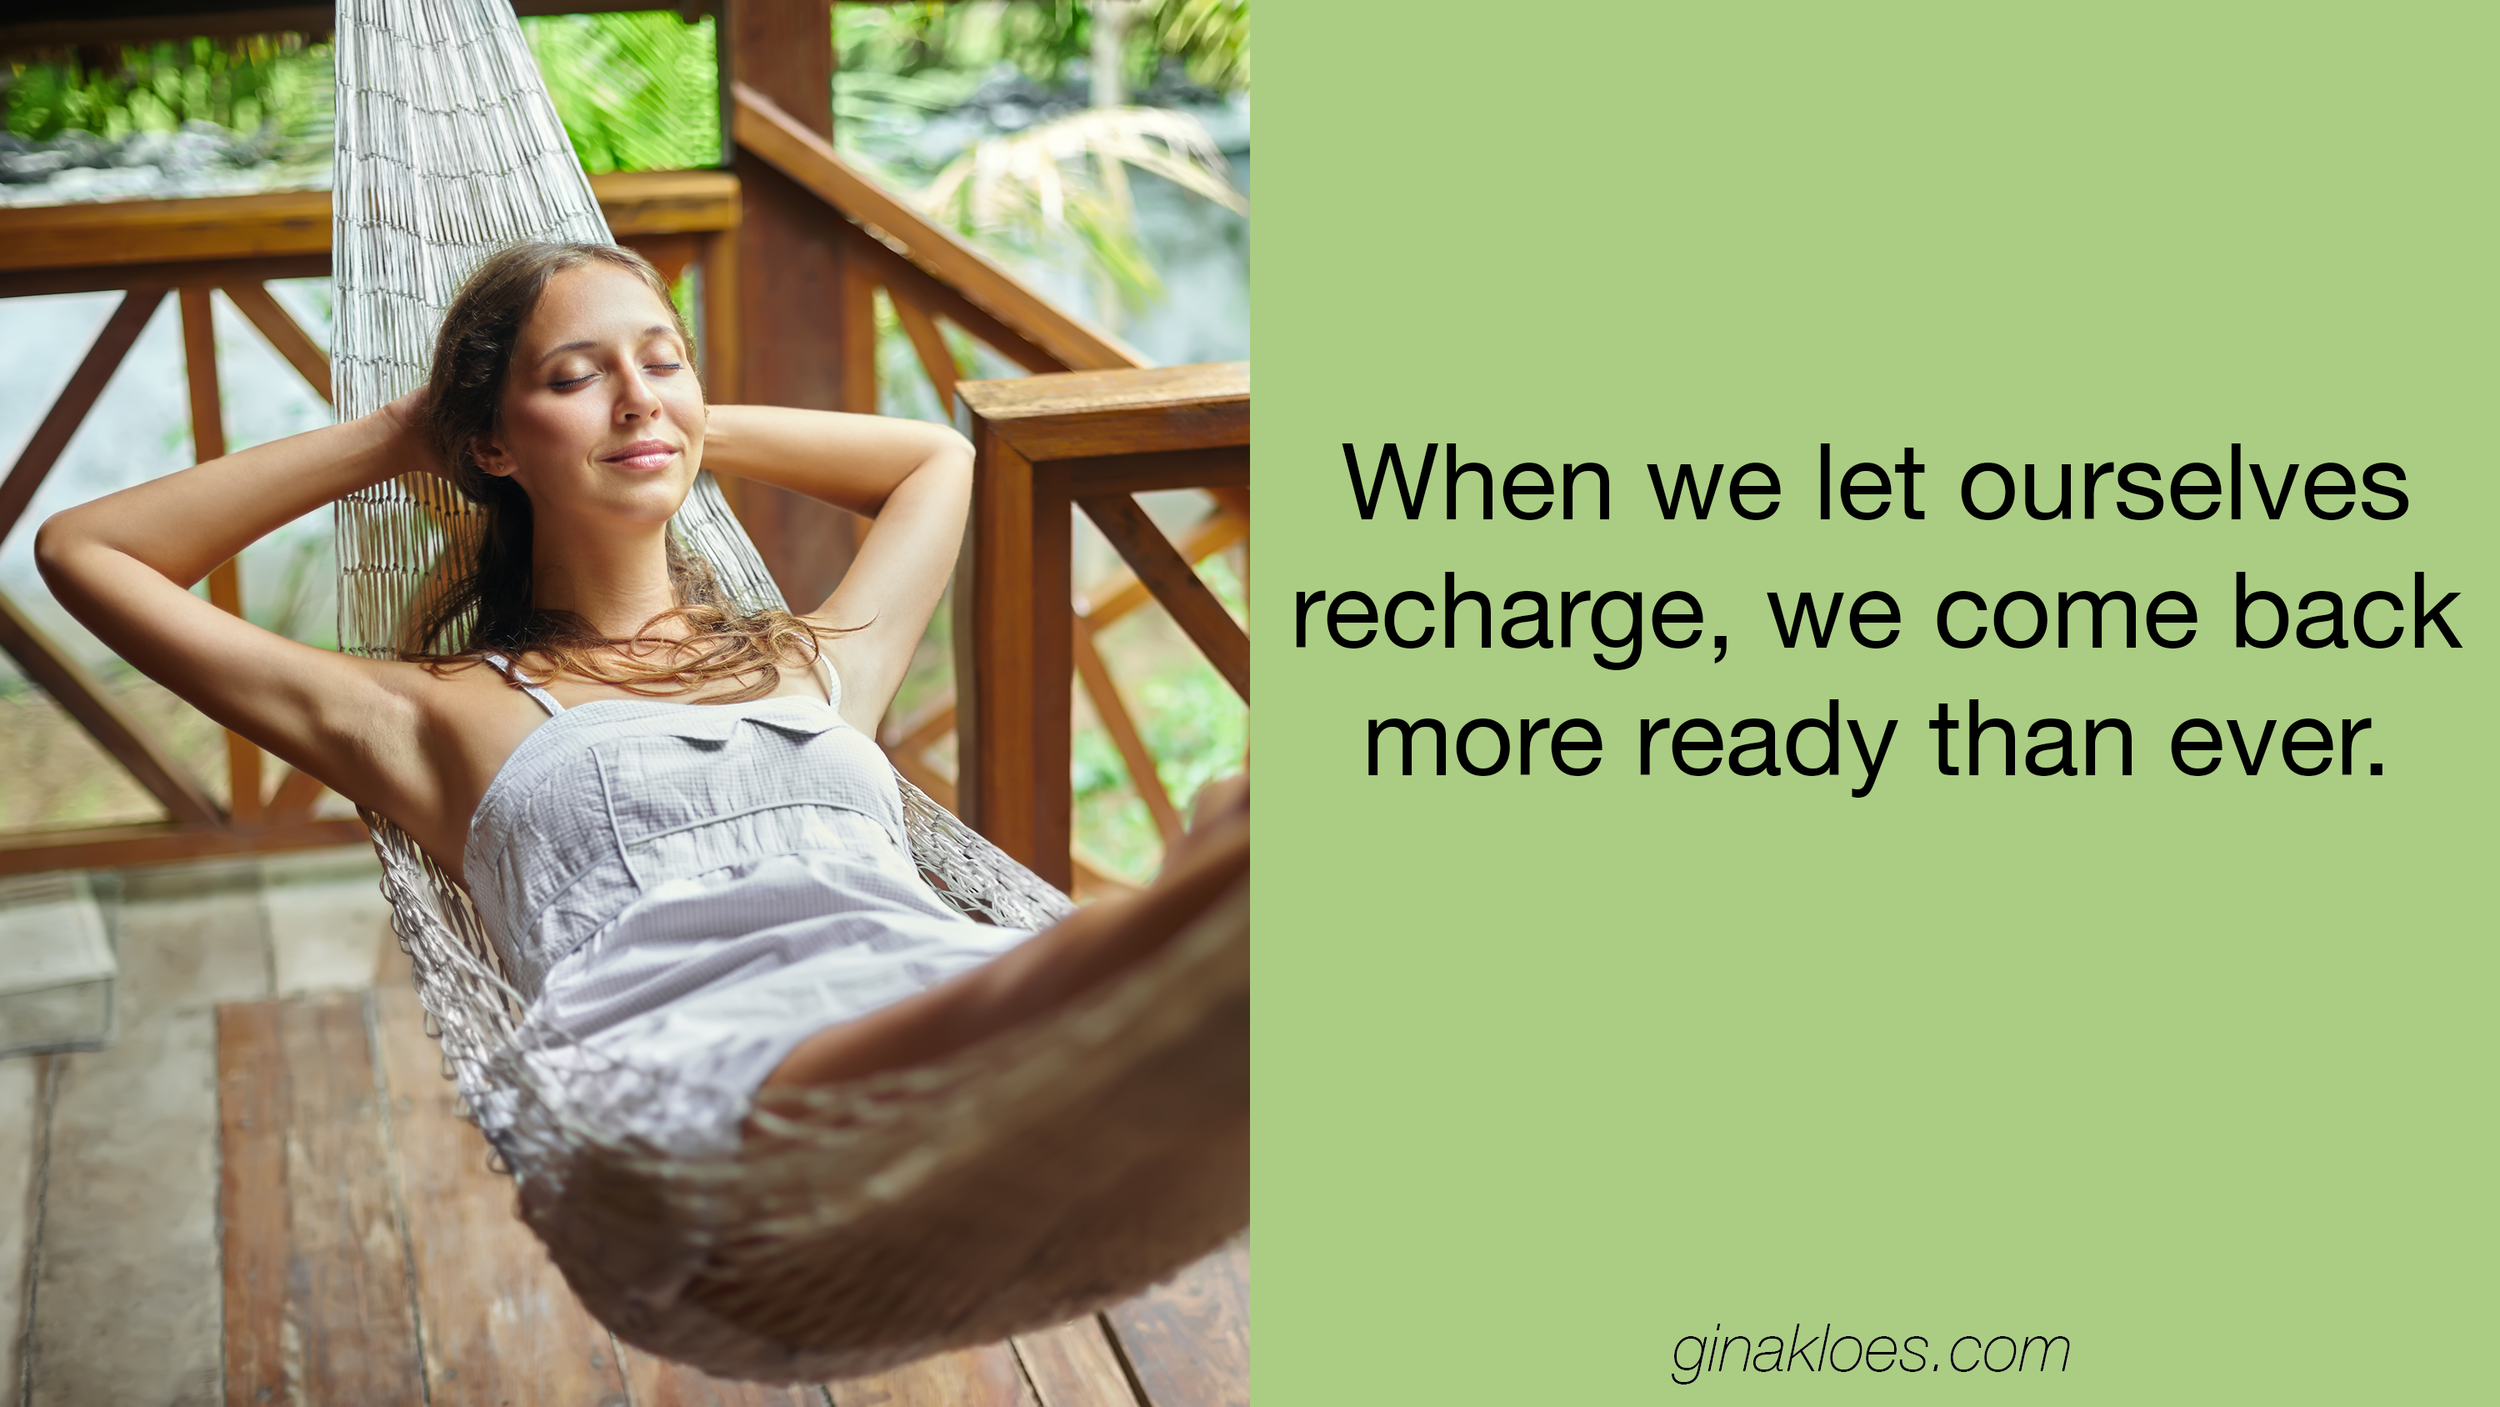 Recharge and come back more ready than ever.png